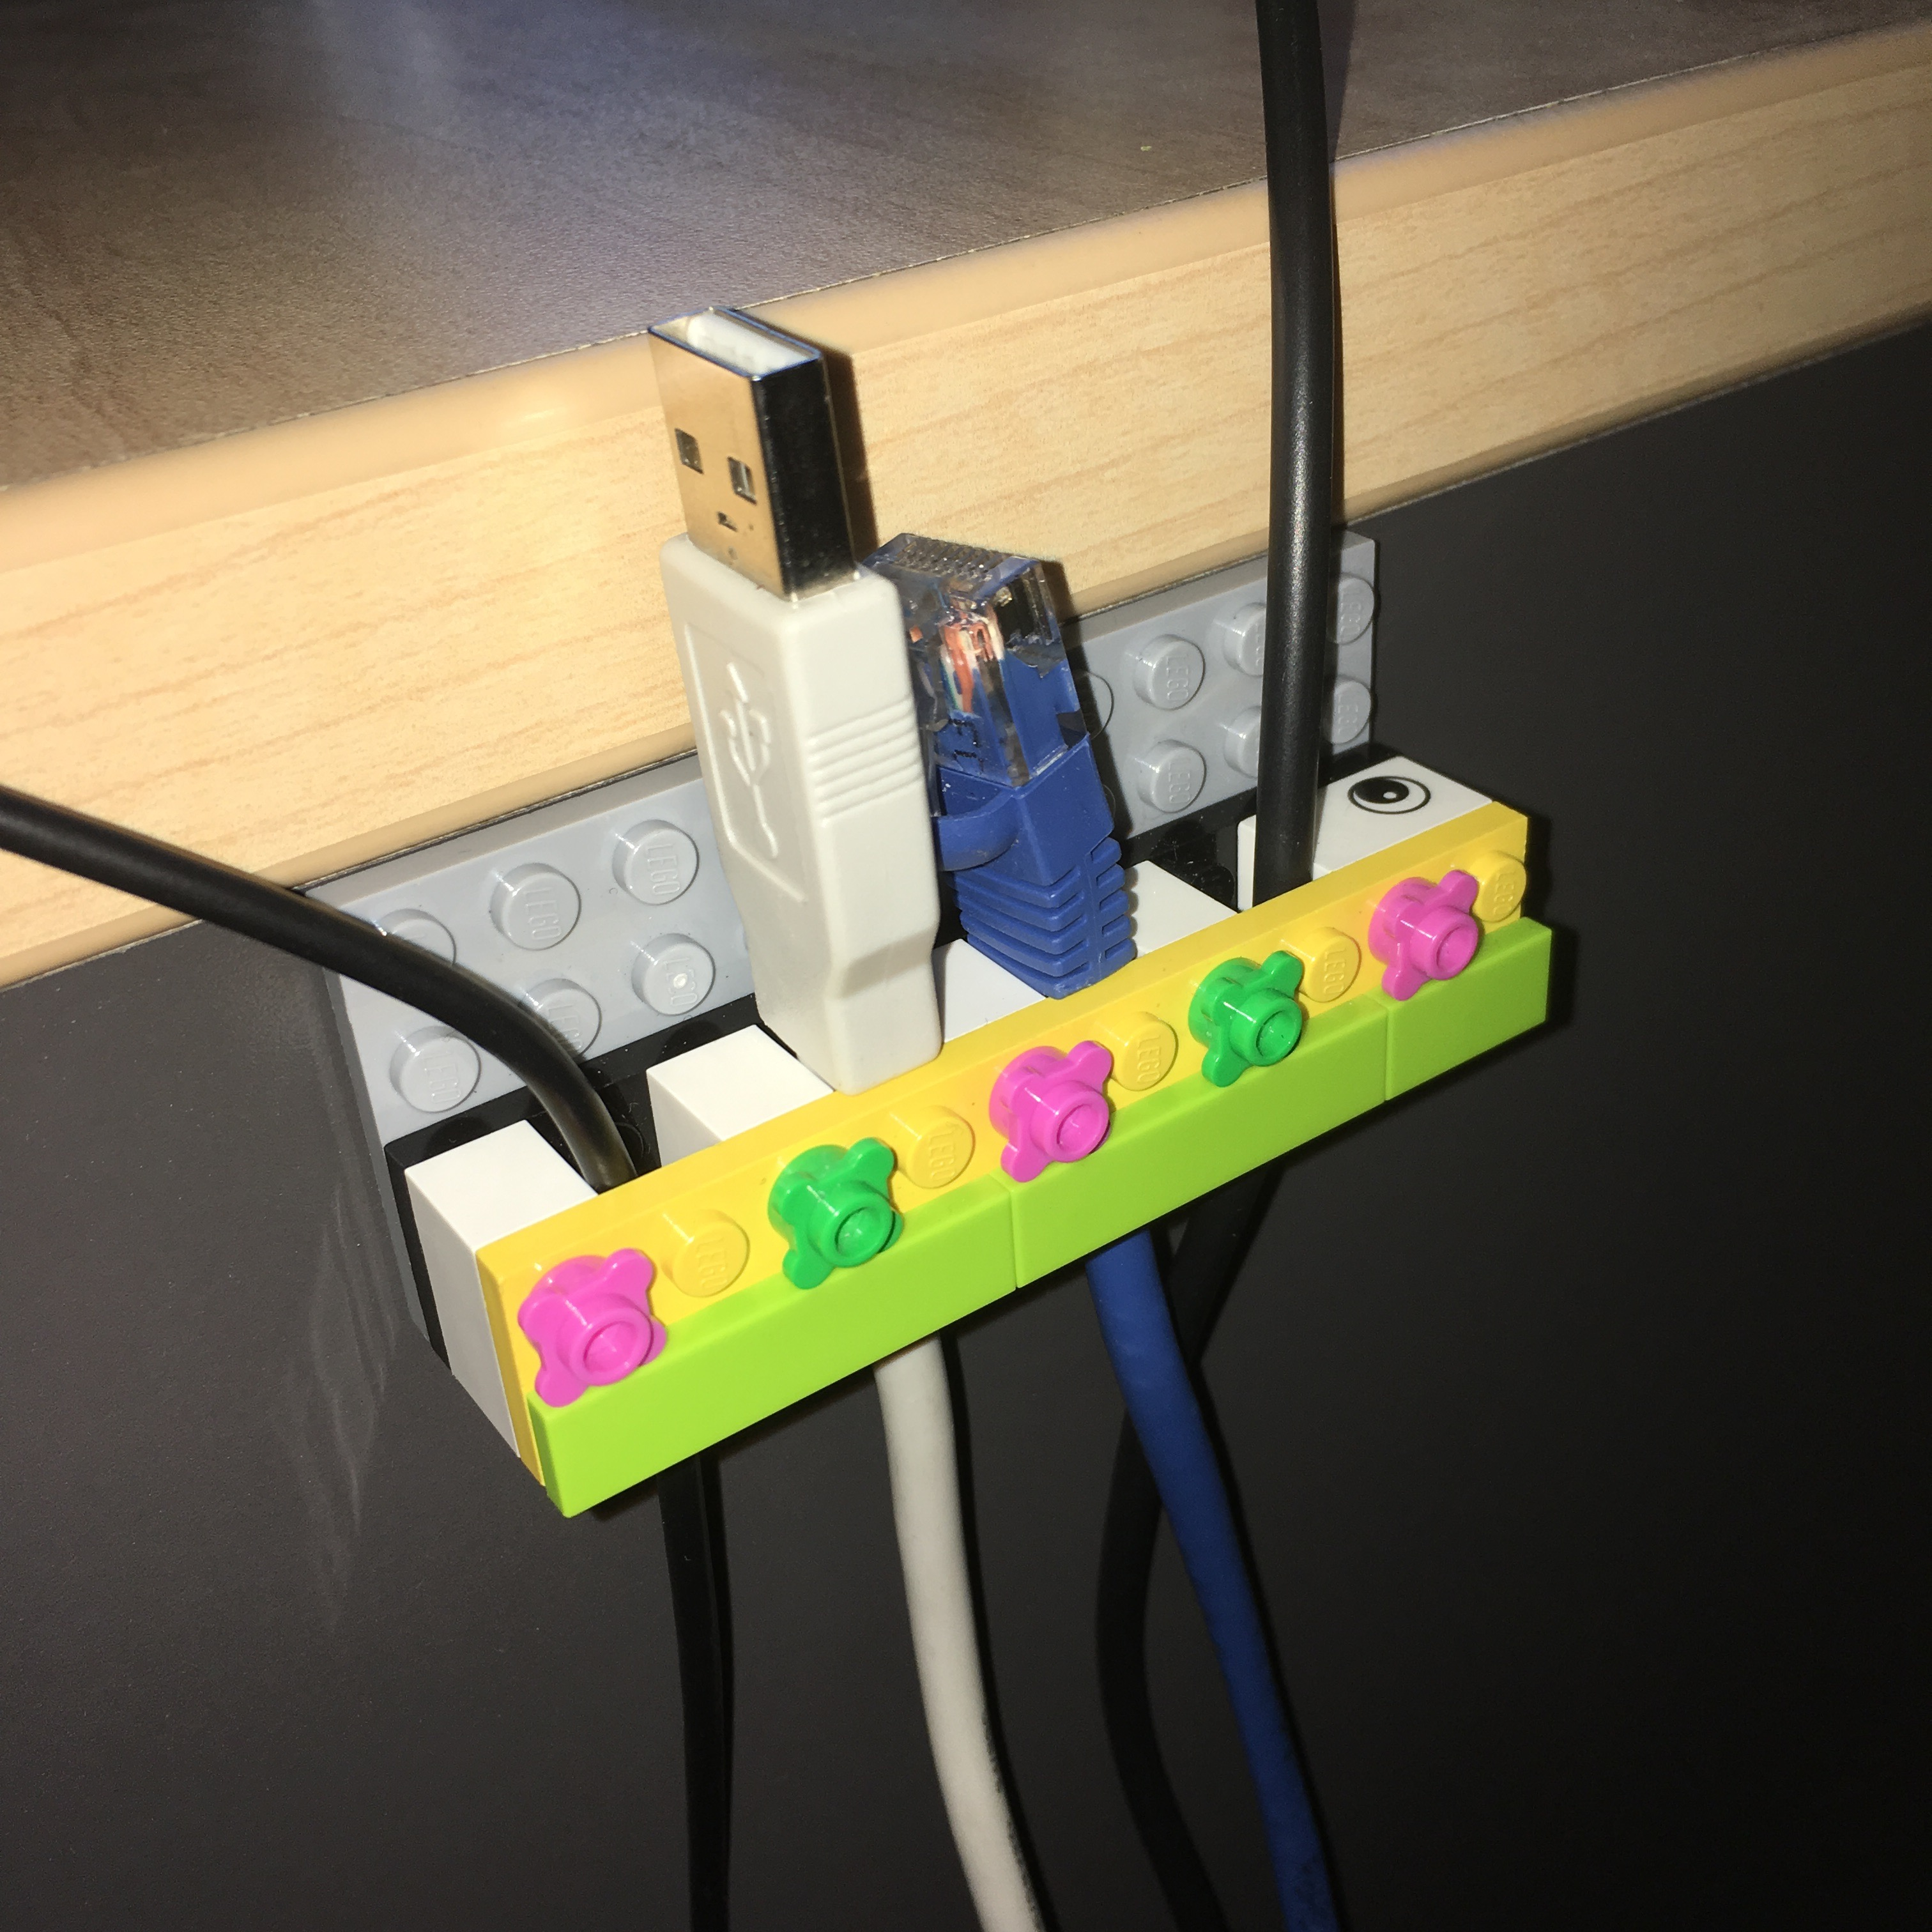 Lego Cable Minder